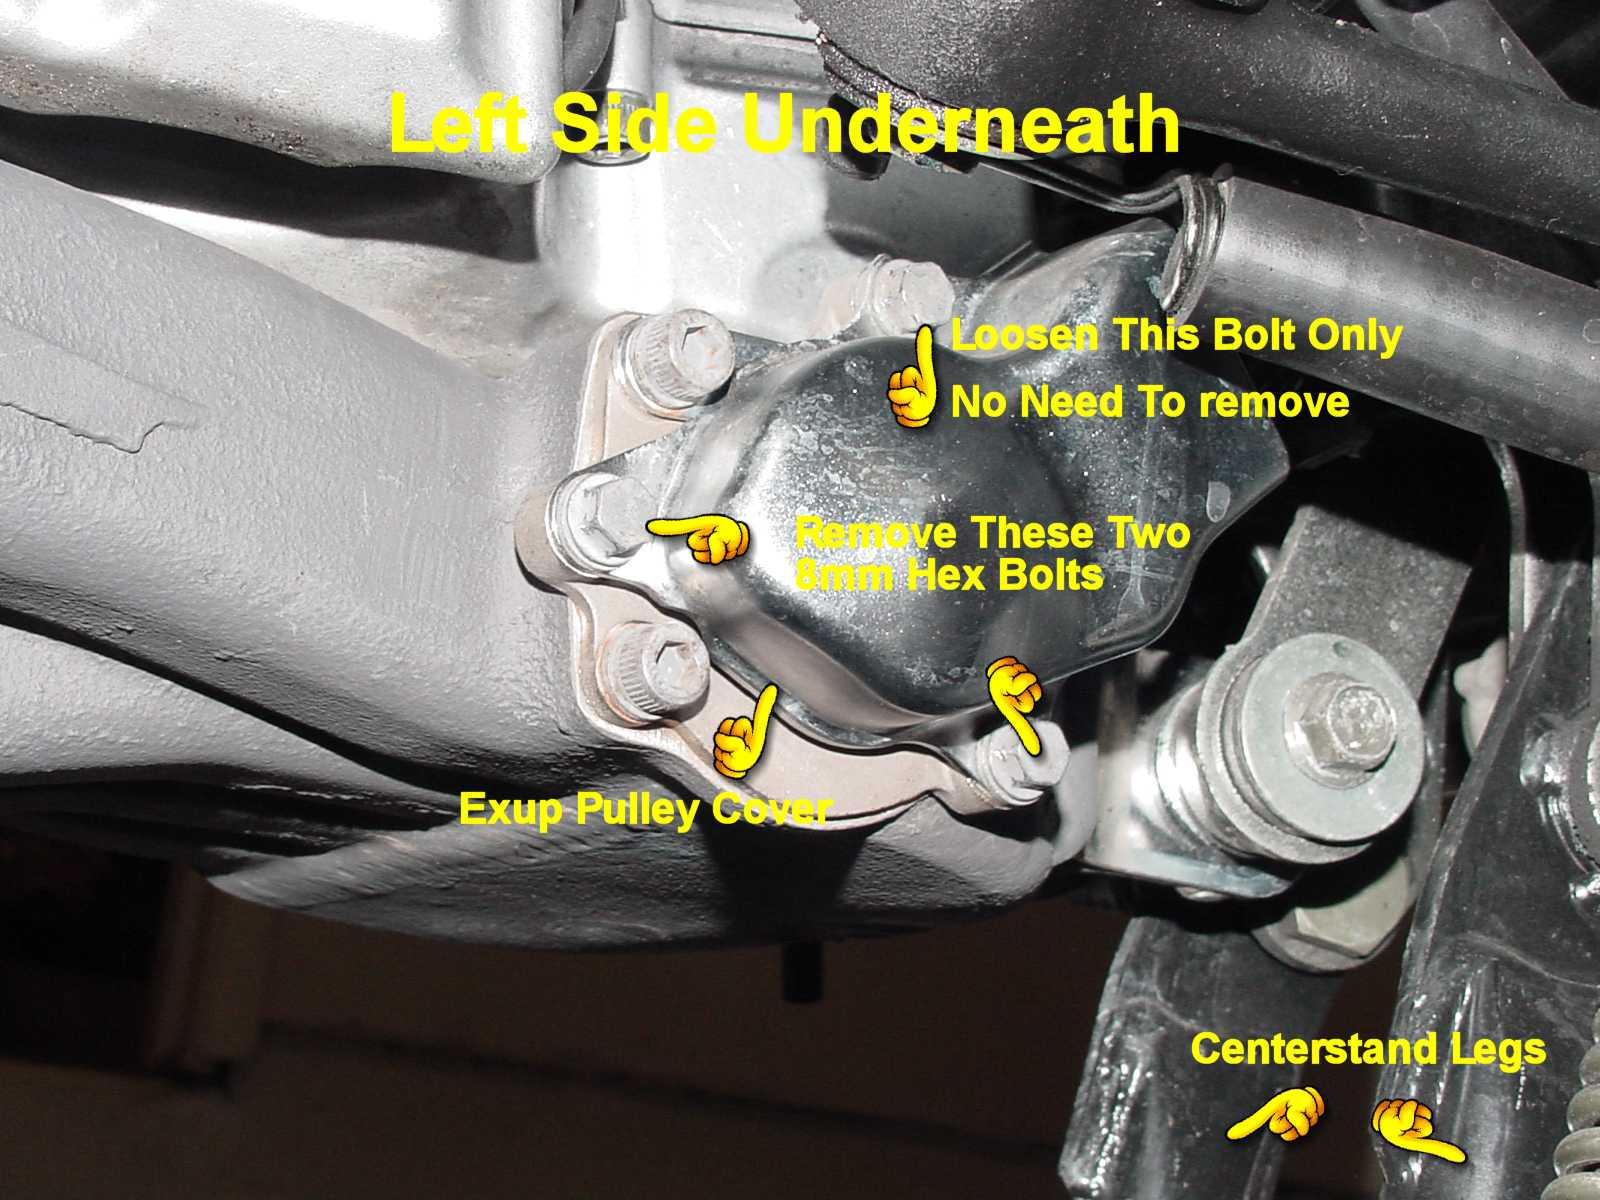 Lubricating Control And Exhaust Valve Cables Yamaha Snowmobile Electrical Wiring Next Loosen The All Way First Lock Nuts Then Adjusting Turn Both Such